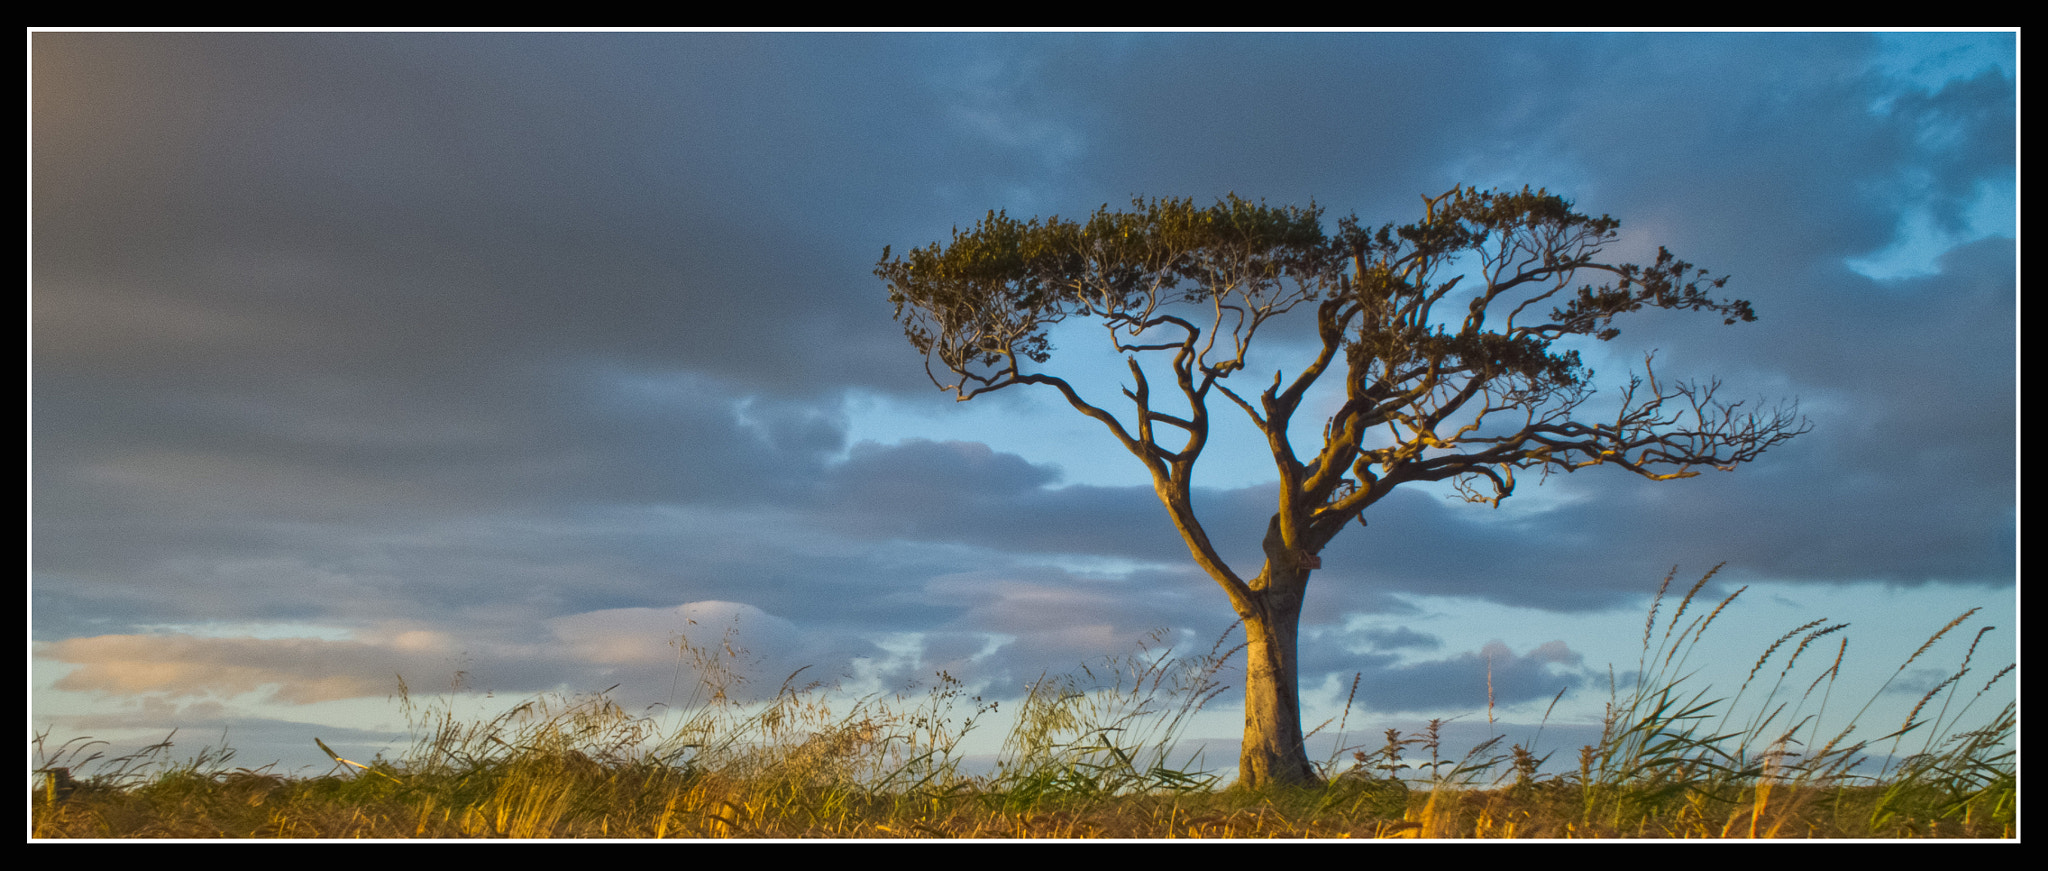 Photograph Tree by Jonny Andrews on 500px